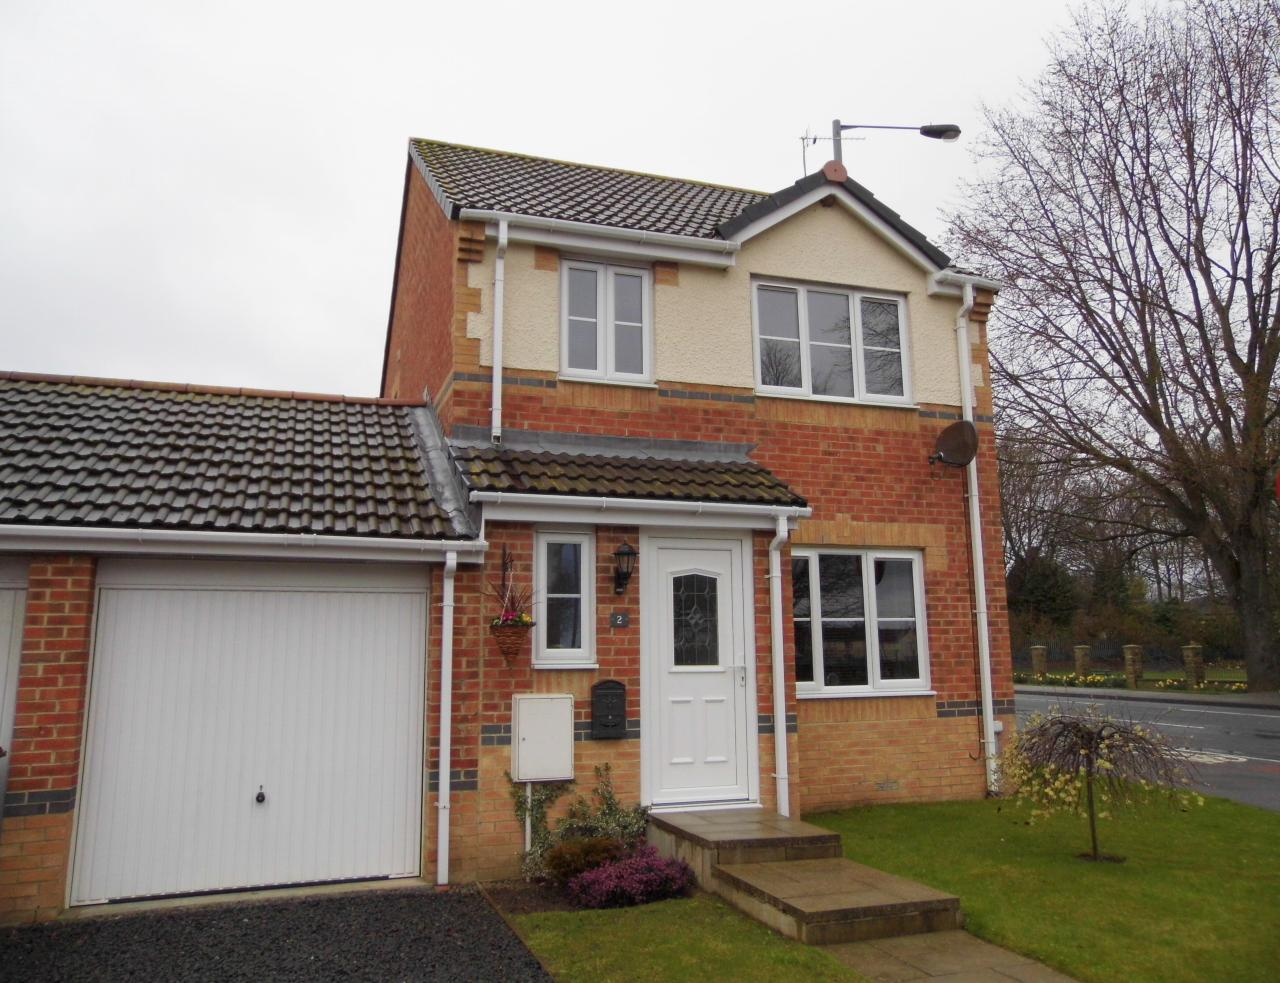 3 bedroom detached house Sale Agreed in St. Helen Auckland - Photograph 1.